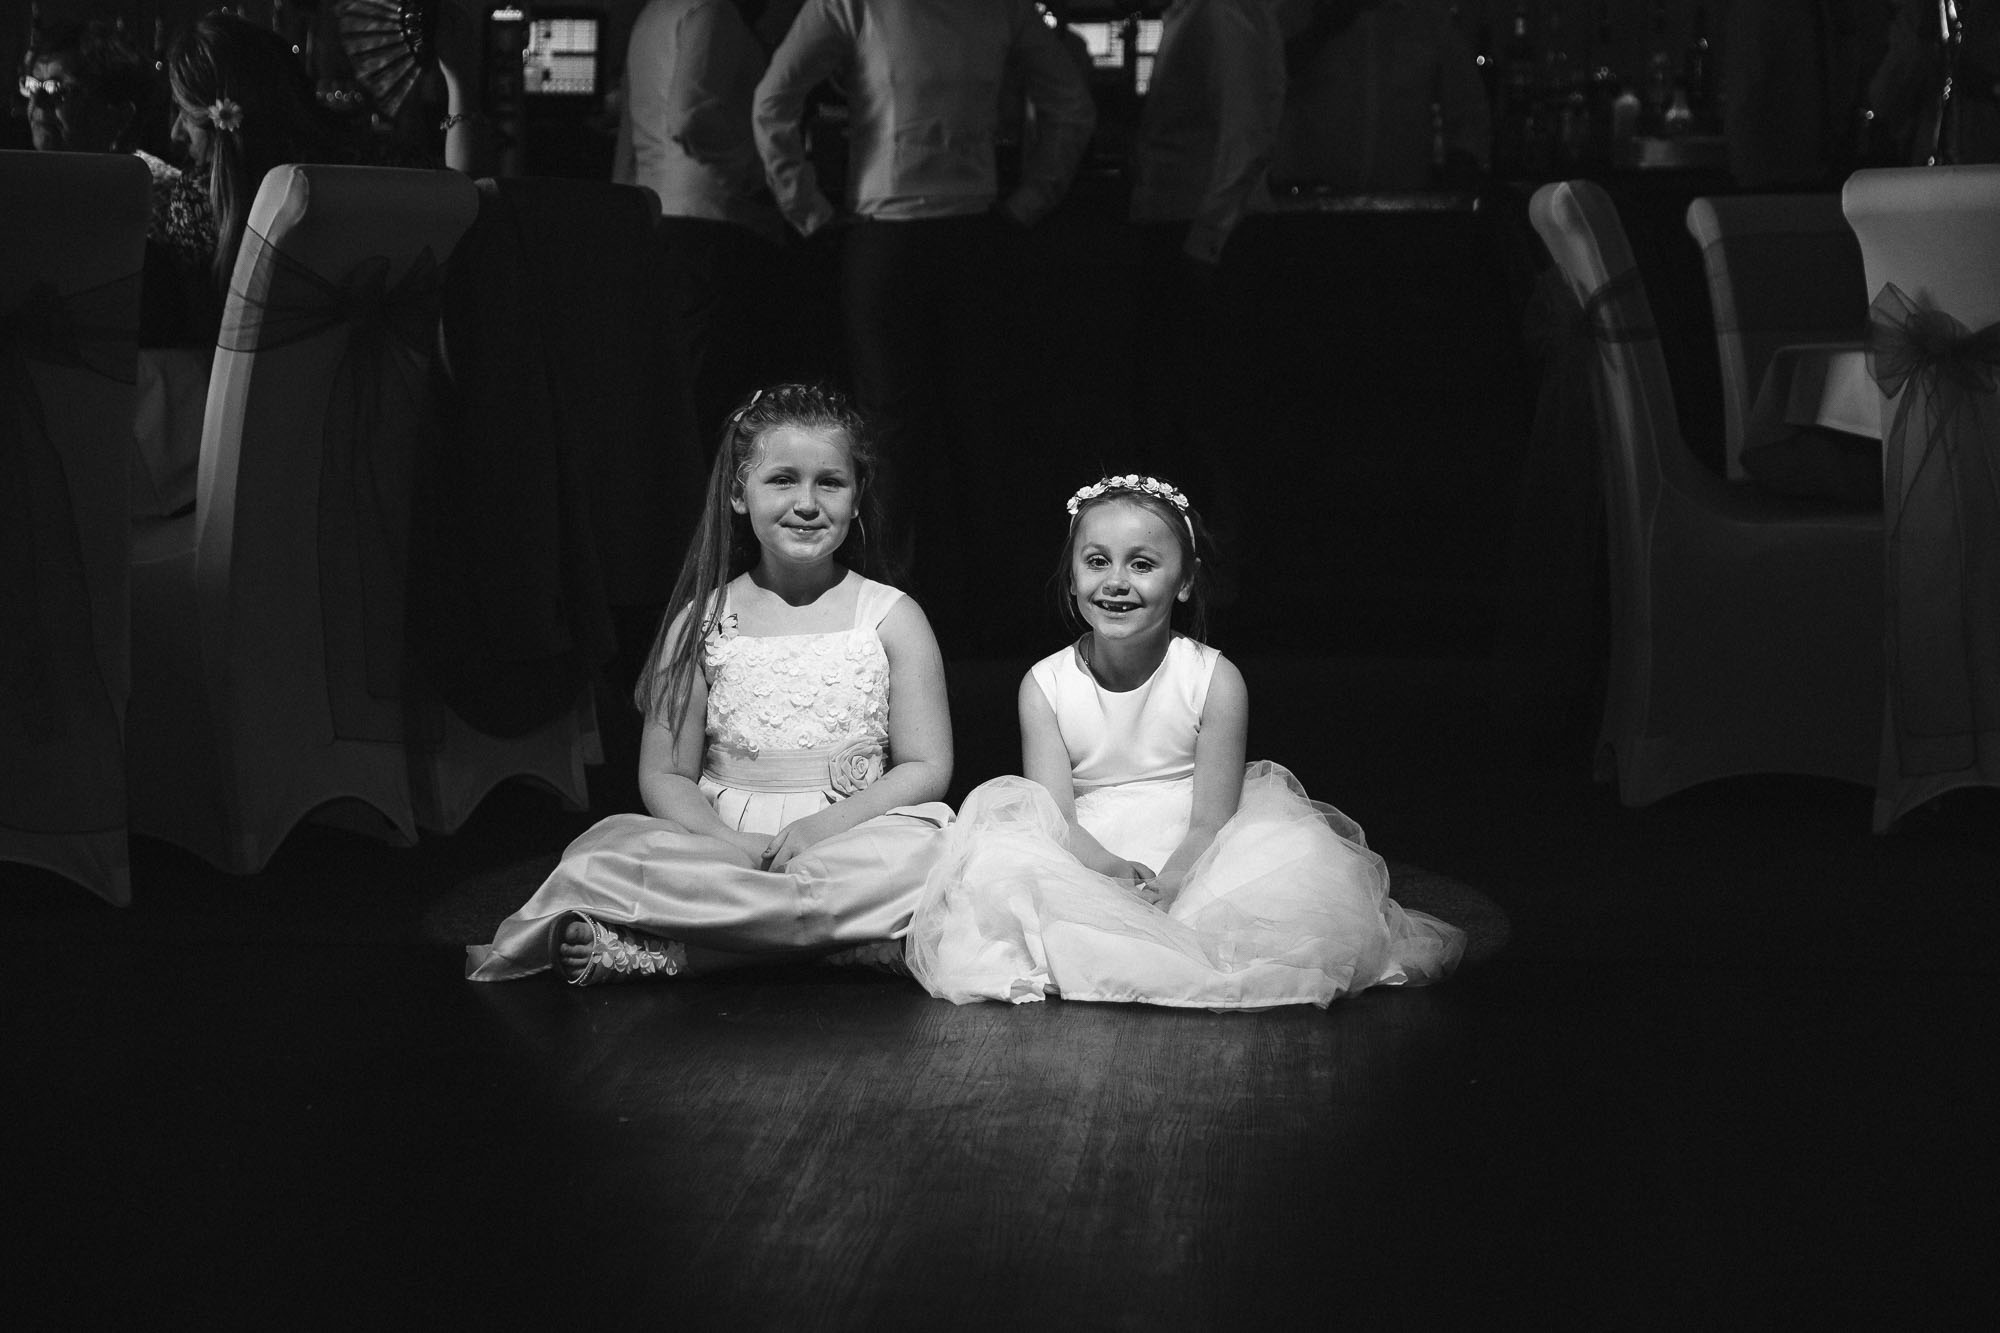 Cute flower girl wedding photograph